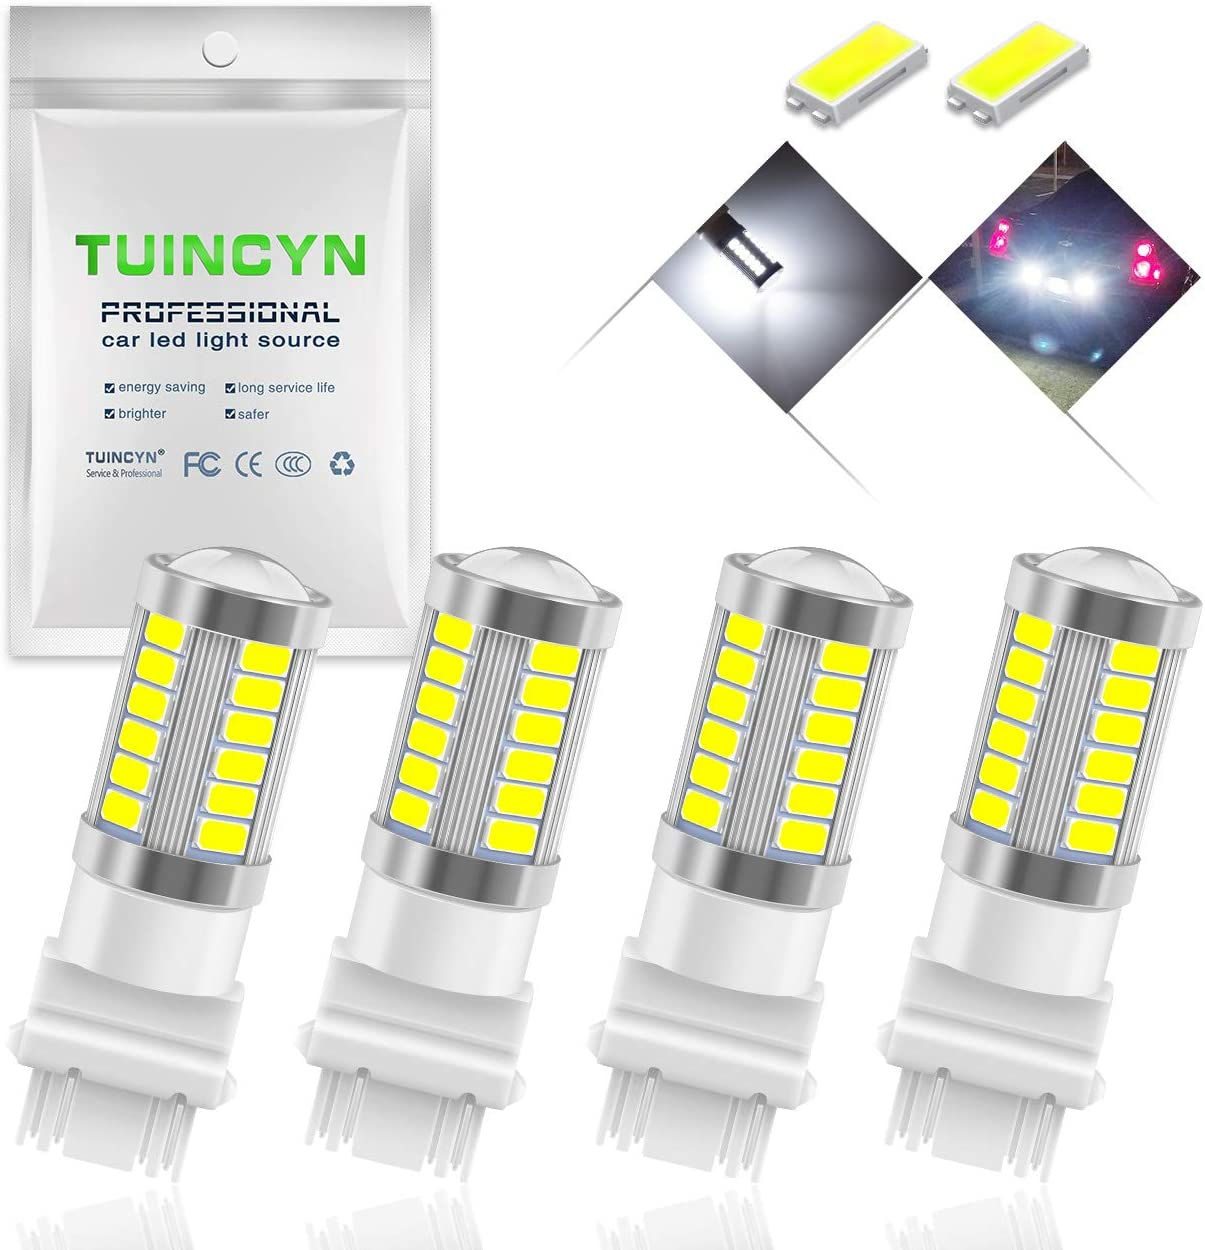 TUINCYN 3157 3155 3156 3157A 3457A LED Brake Light Bulb White 5630 33SMD 8000K 900 Lumens Super Bright Turn Signal Light Tail Back Up Reverse Light Parking Light DC 12V (Pack of 4)